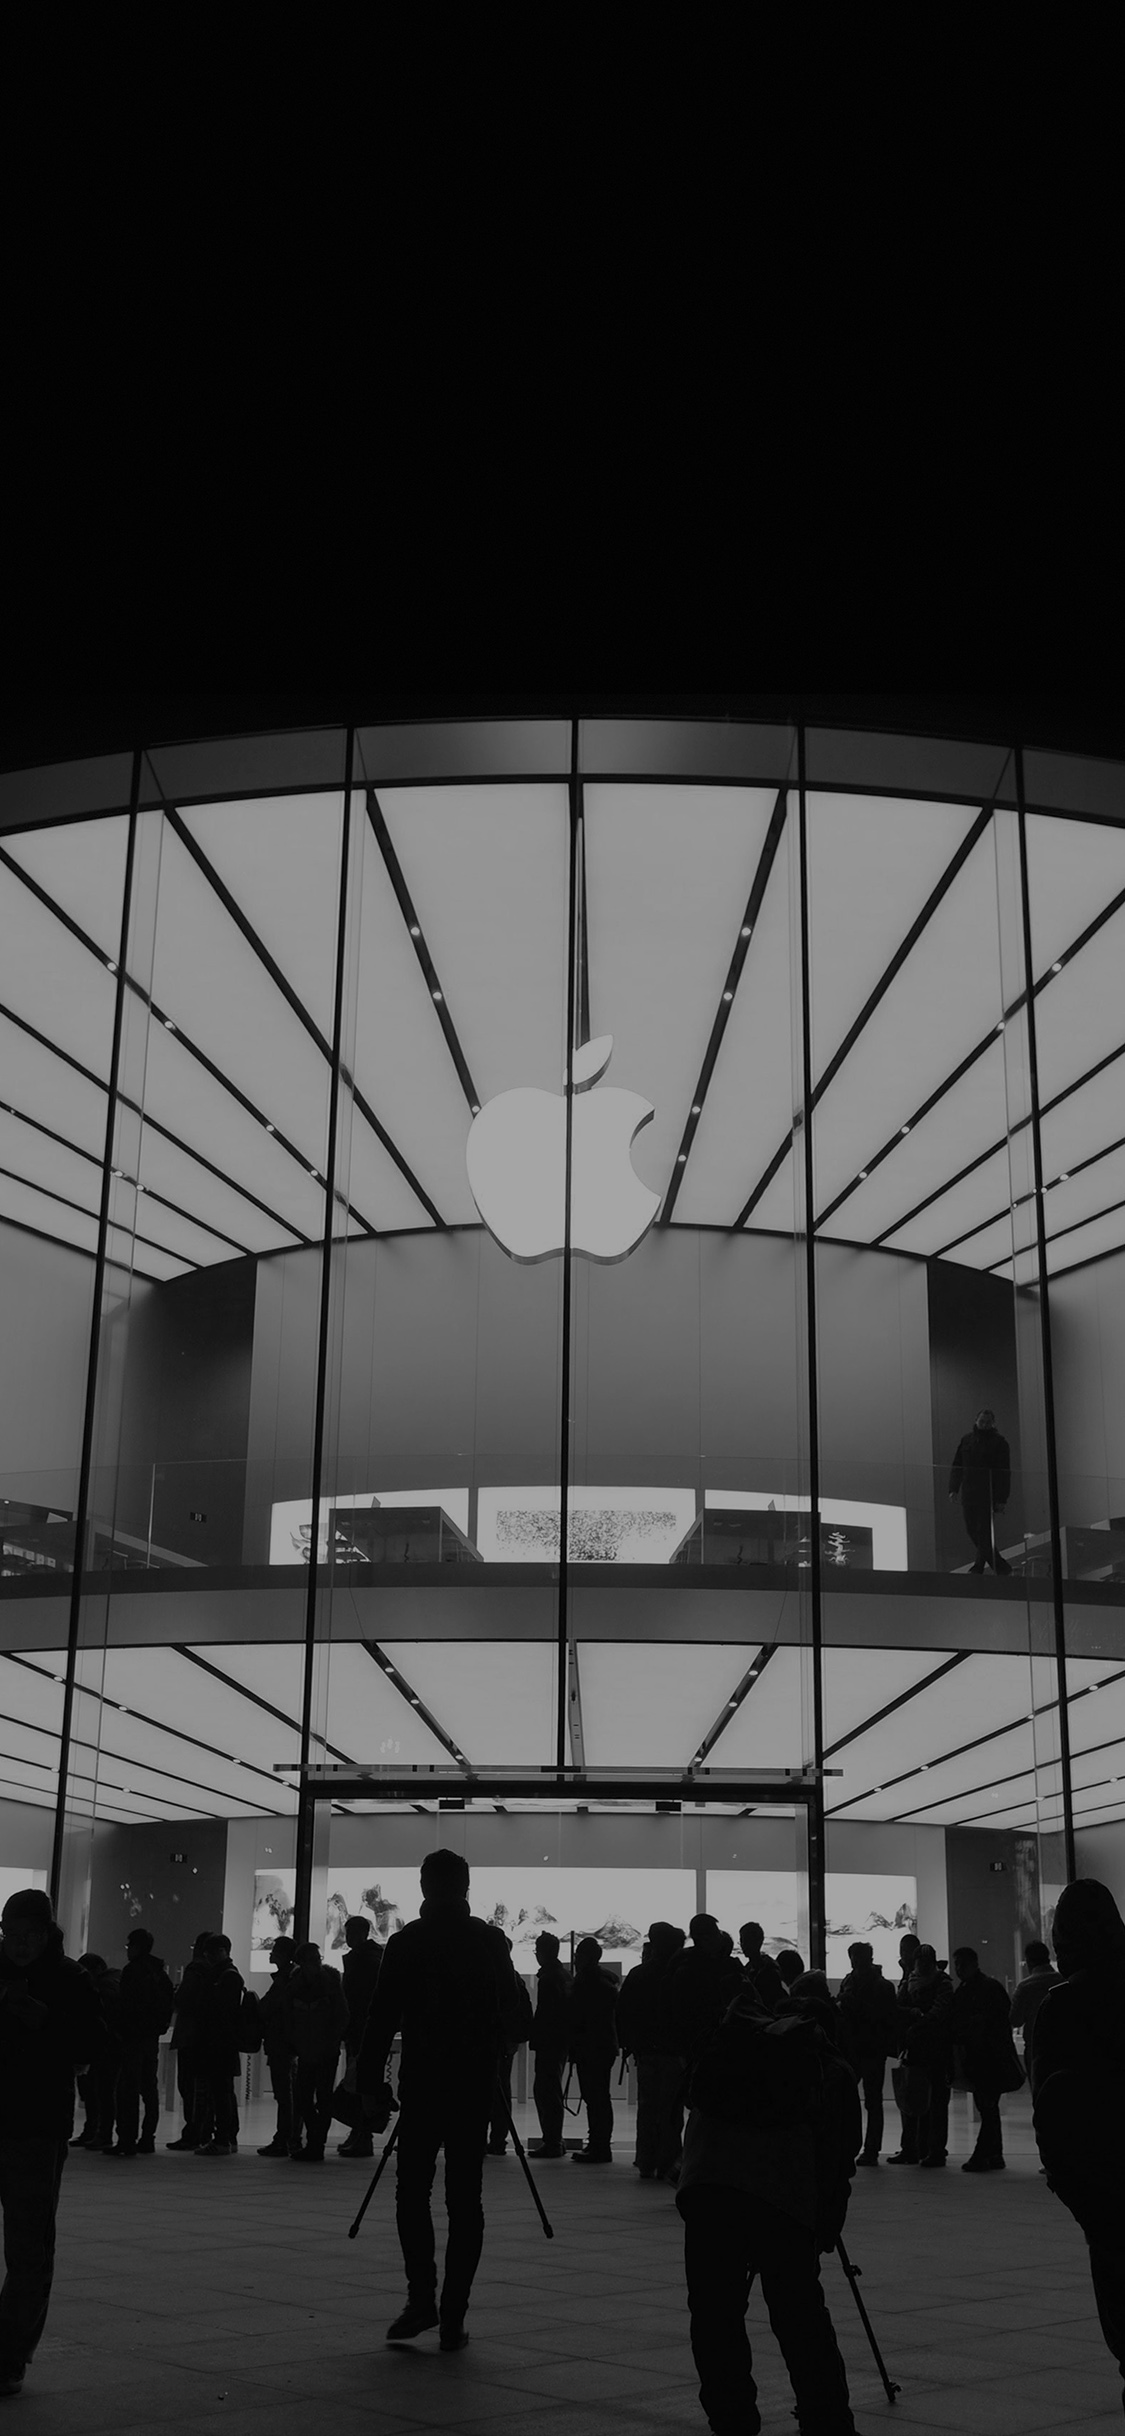 iPhoneXpapers.com-Apple-iPhone-wallpaper-aq20-photo-apple-store-event-city-architecture-dark-bw